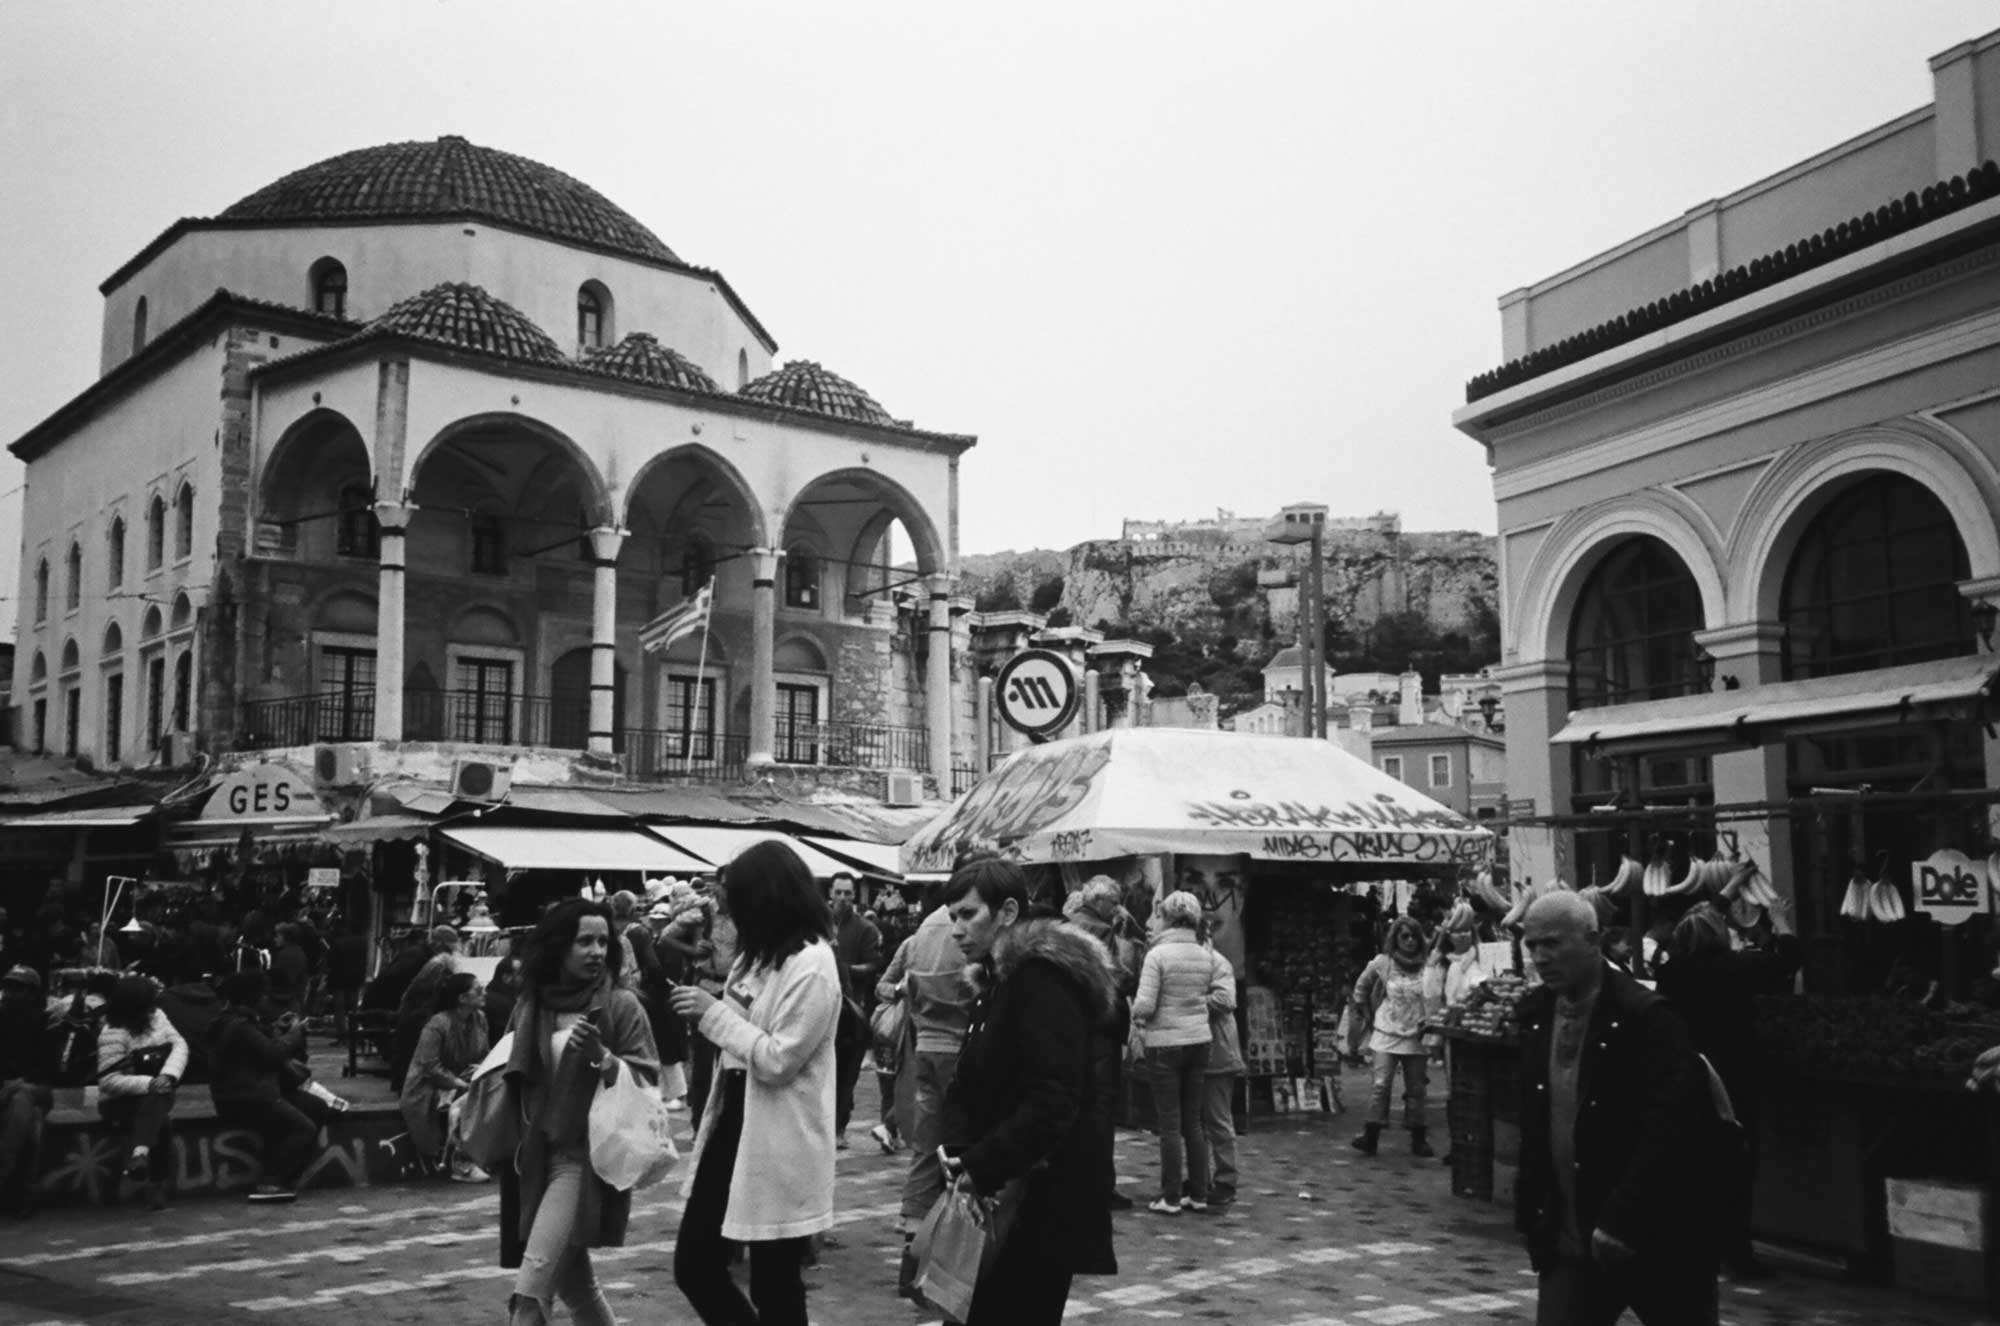 Forget Mediterranean Blue; Athens Looks Best in Black and White